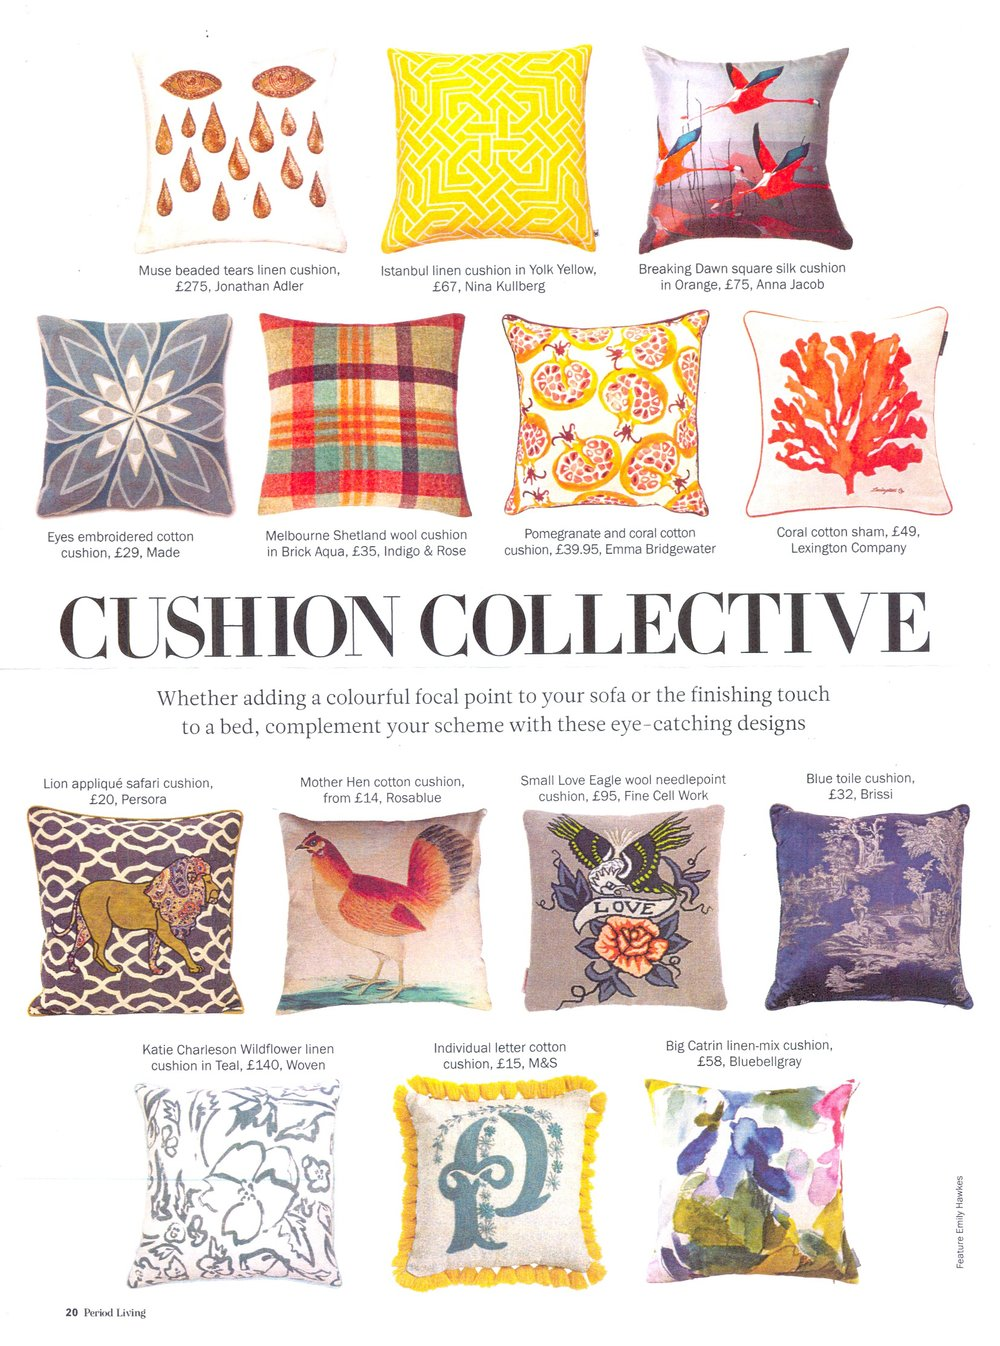 Luxury cushions Period Living Magazine on katiecharleson.com